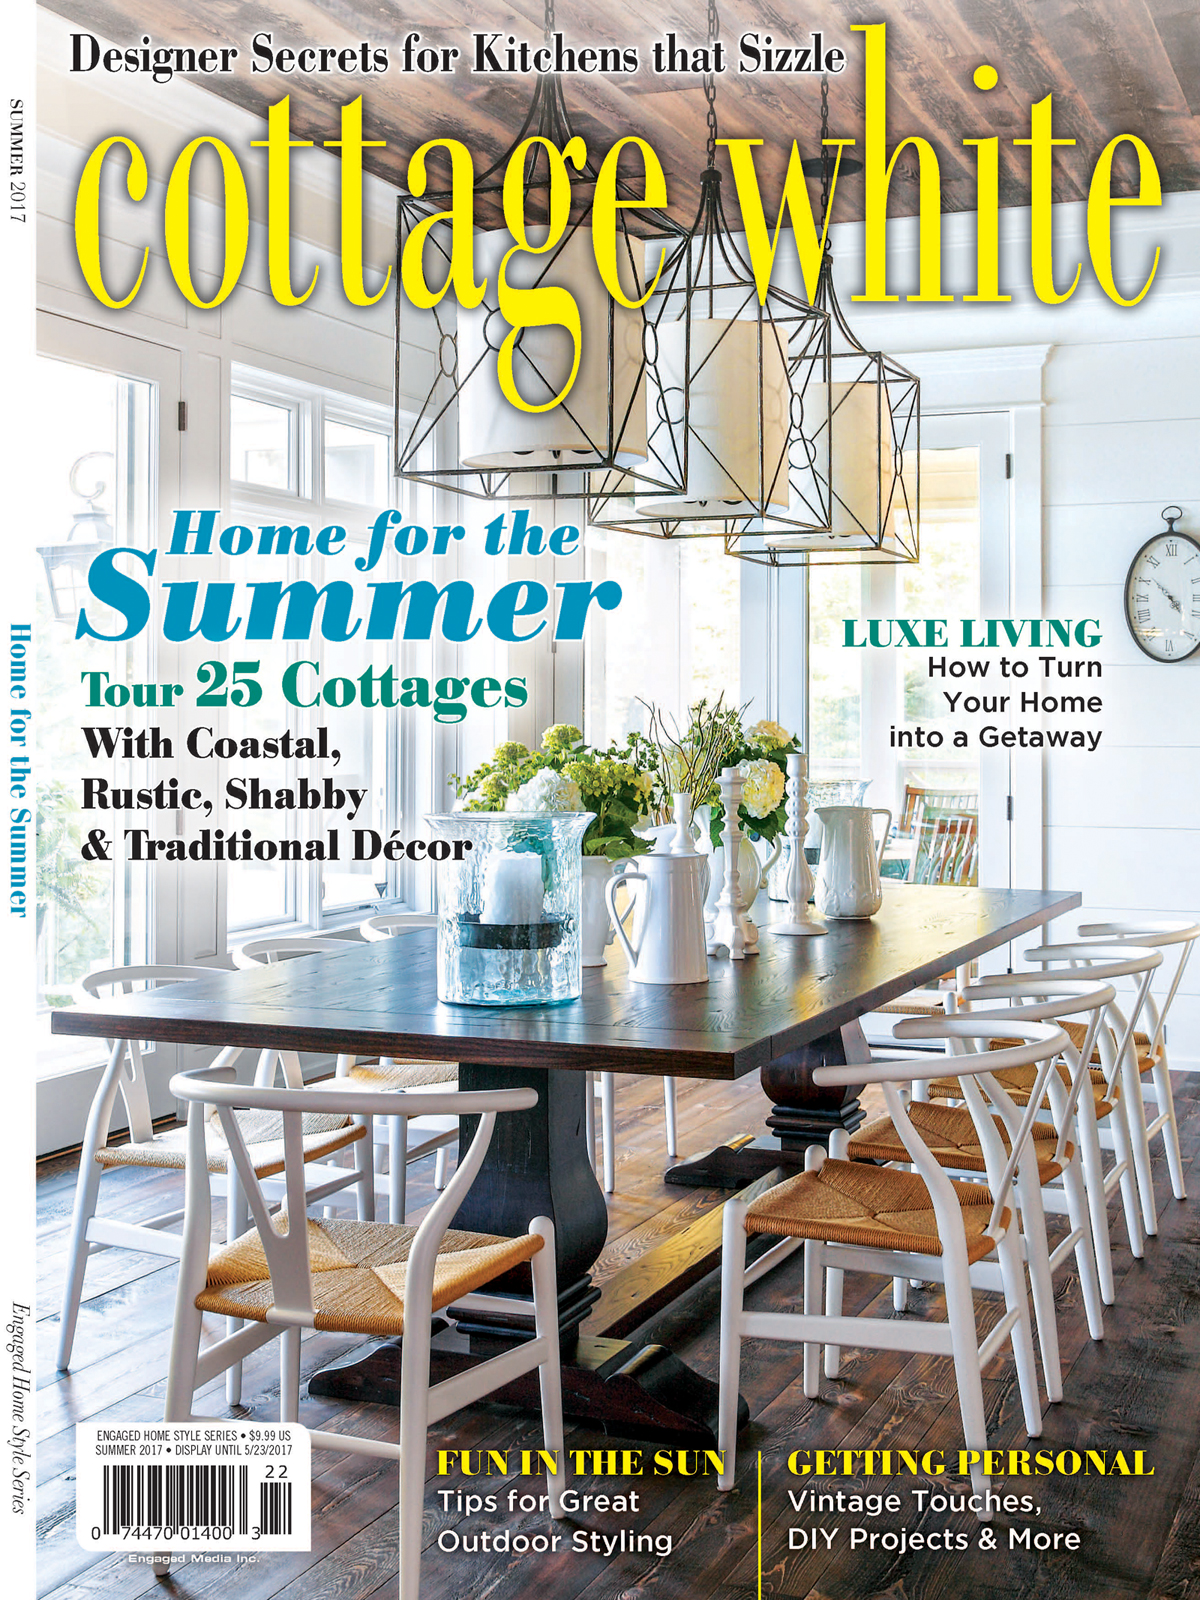 blackband_design_press_cottage_white